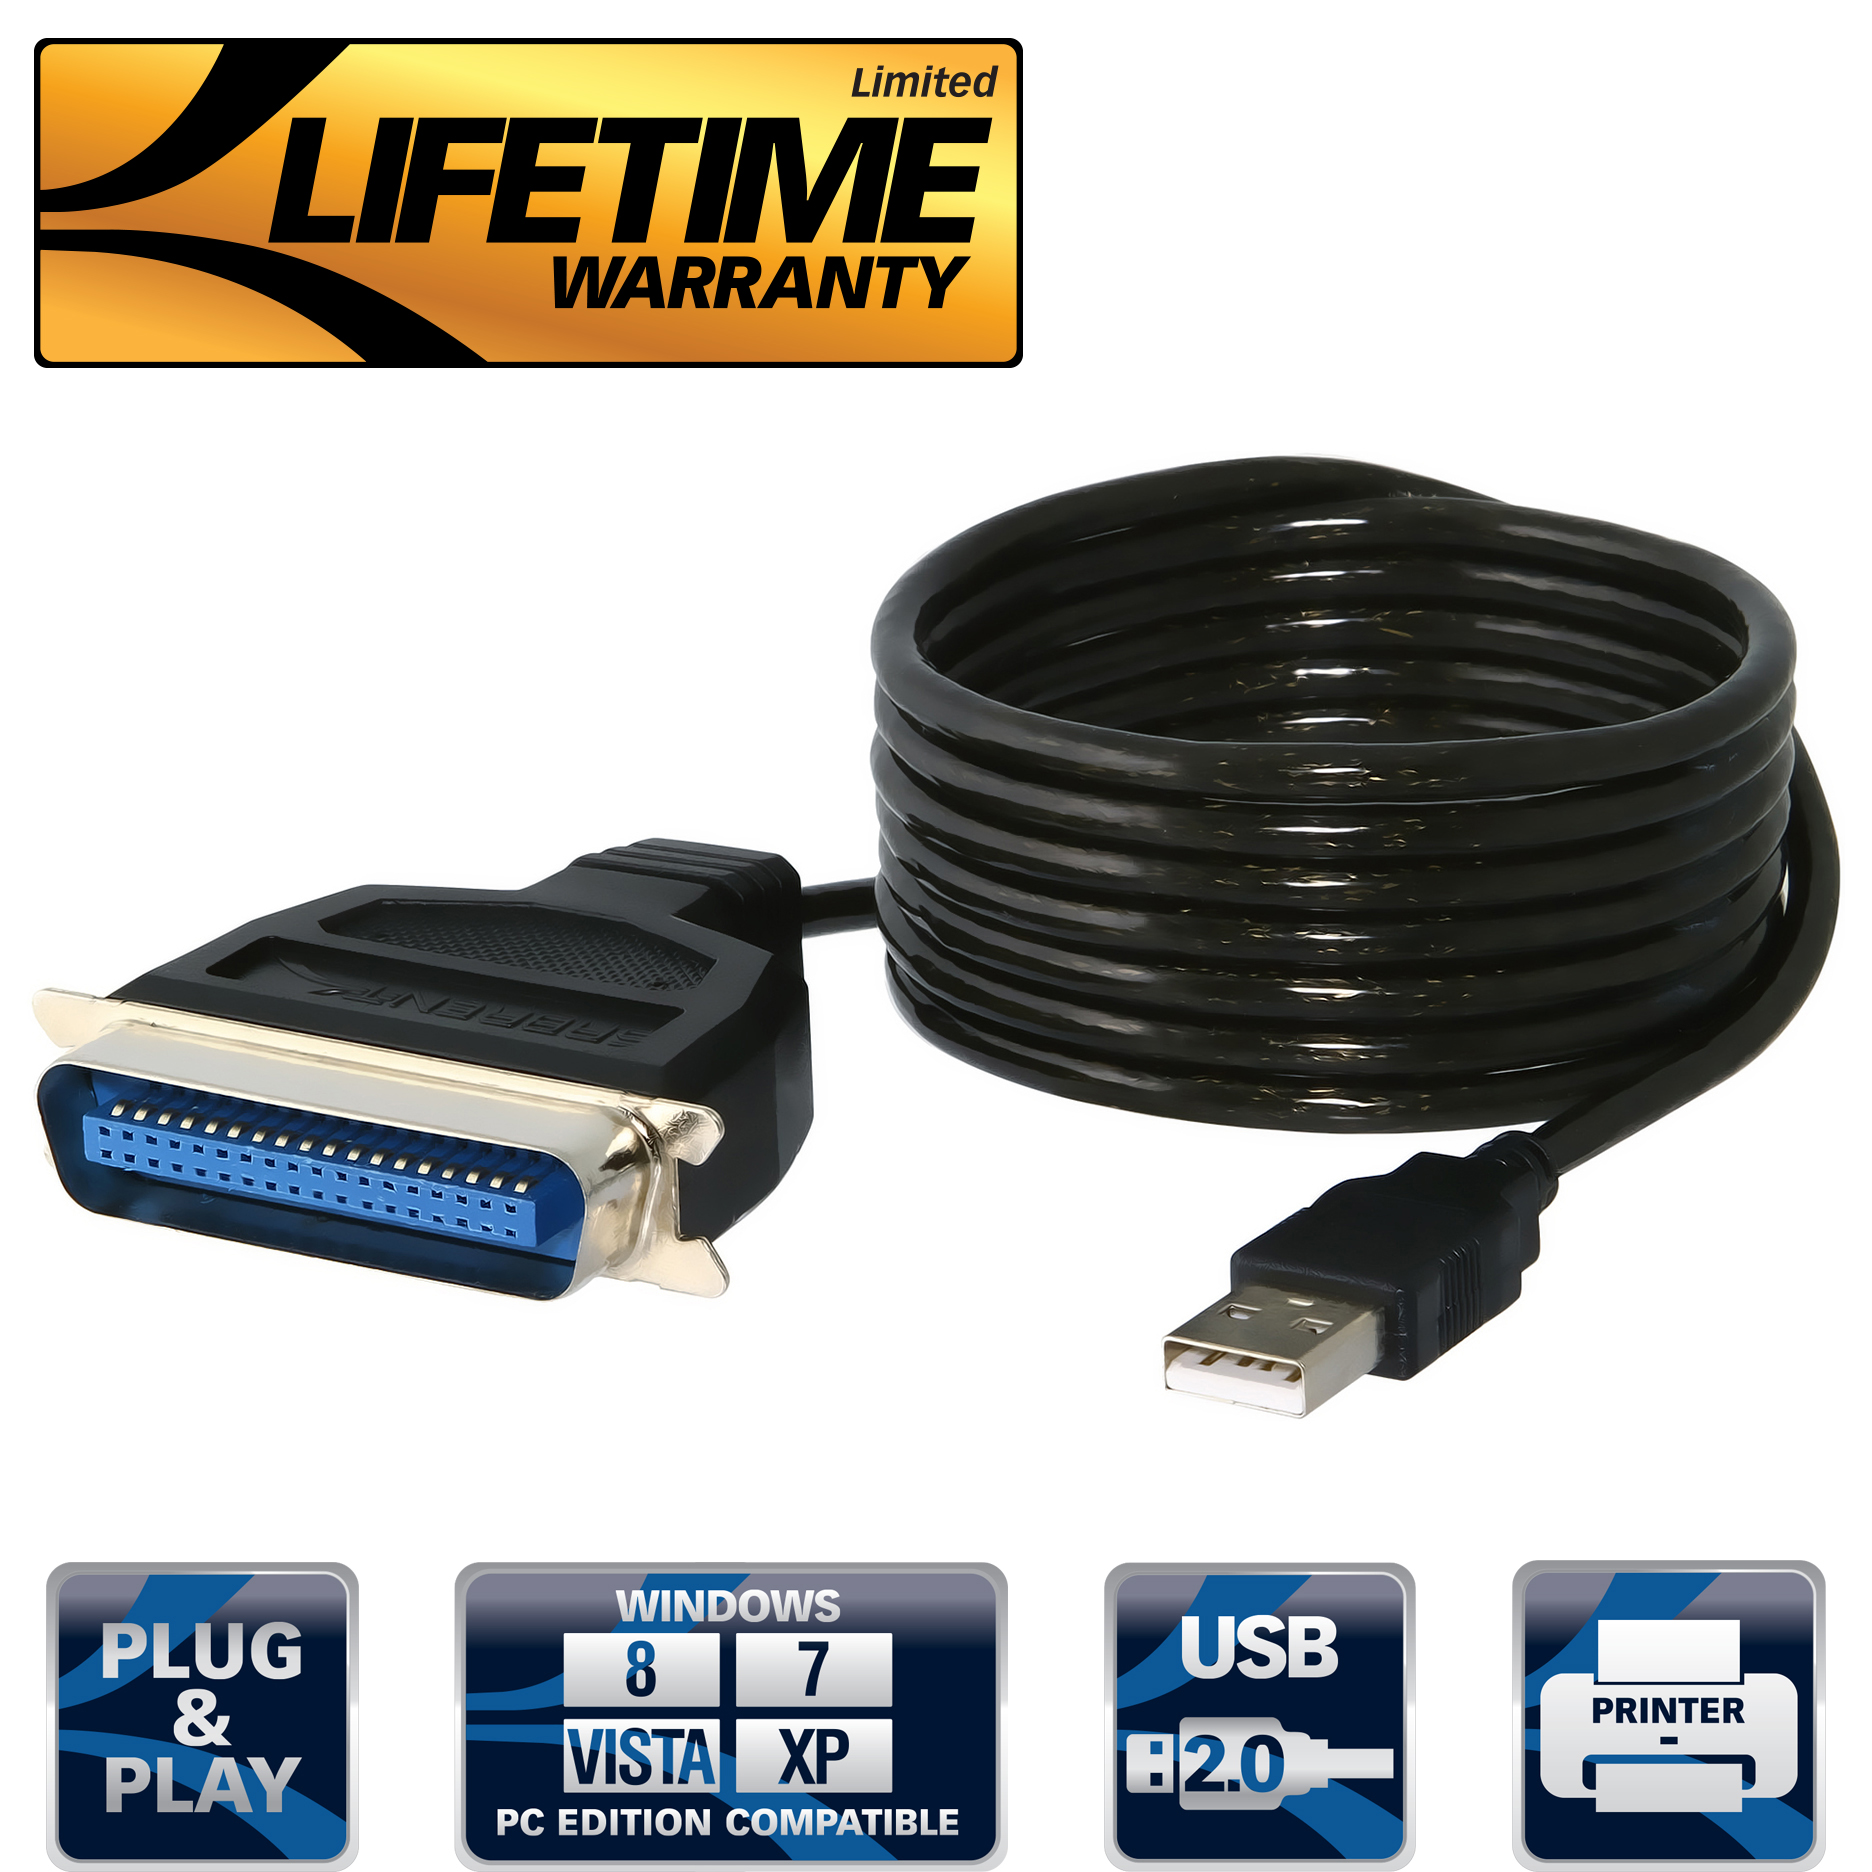 Sabrent USB to Parallel IEEE 1284 Printer Cable Adapter (CB-CN36) -  Walmart.com